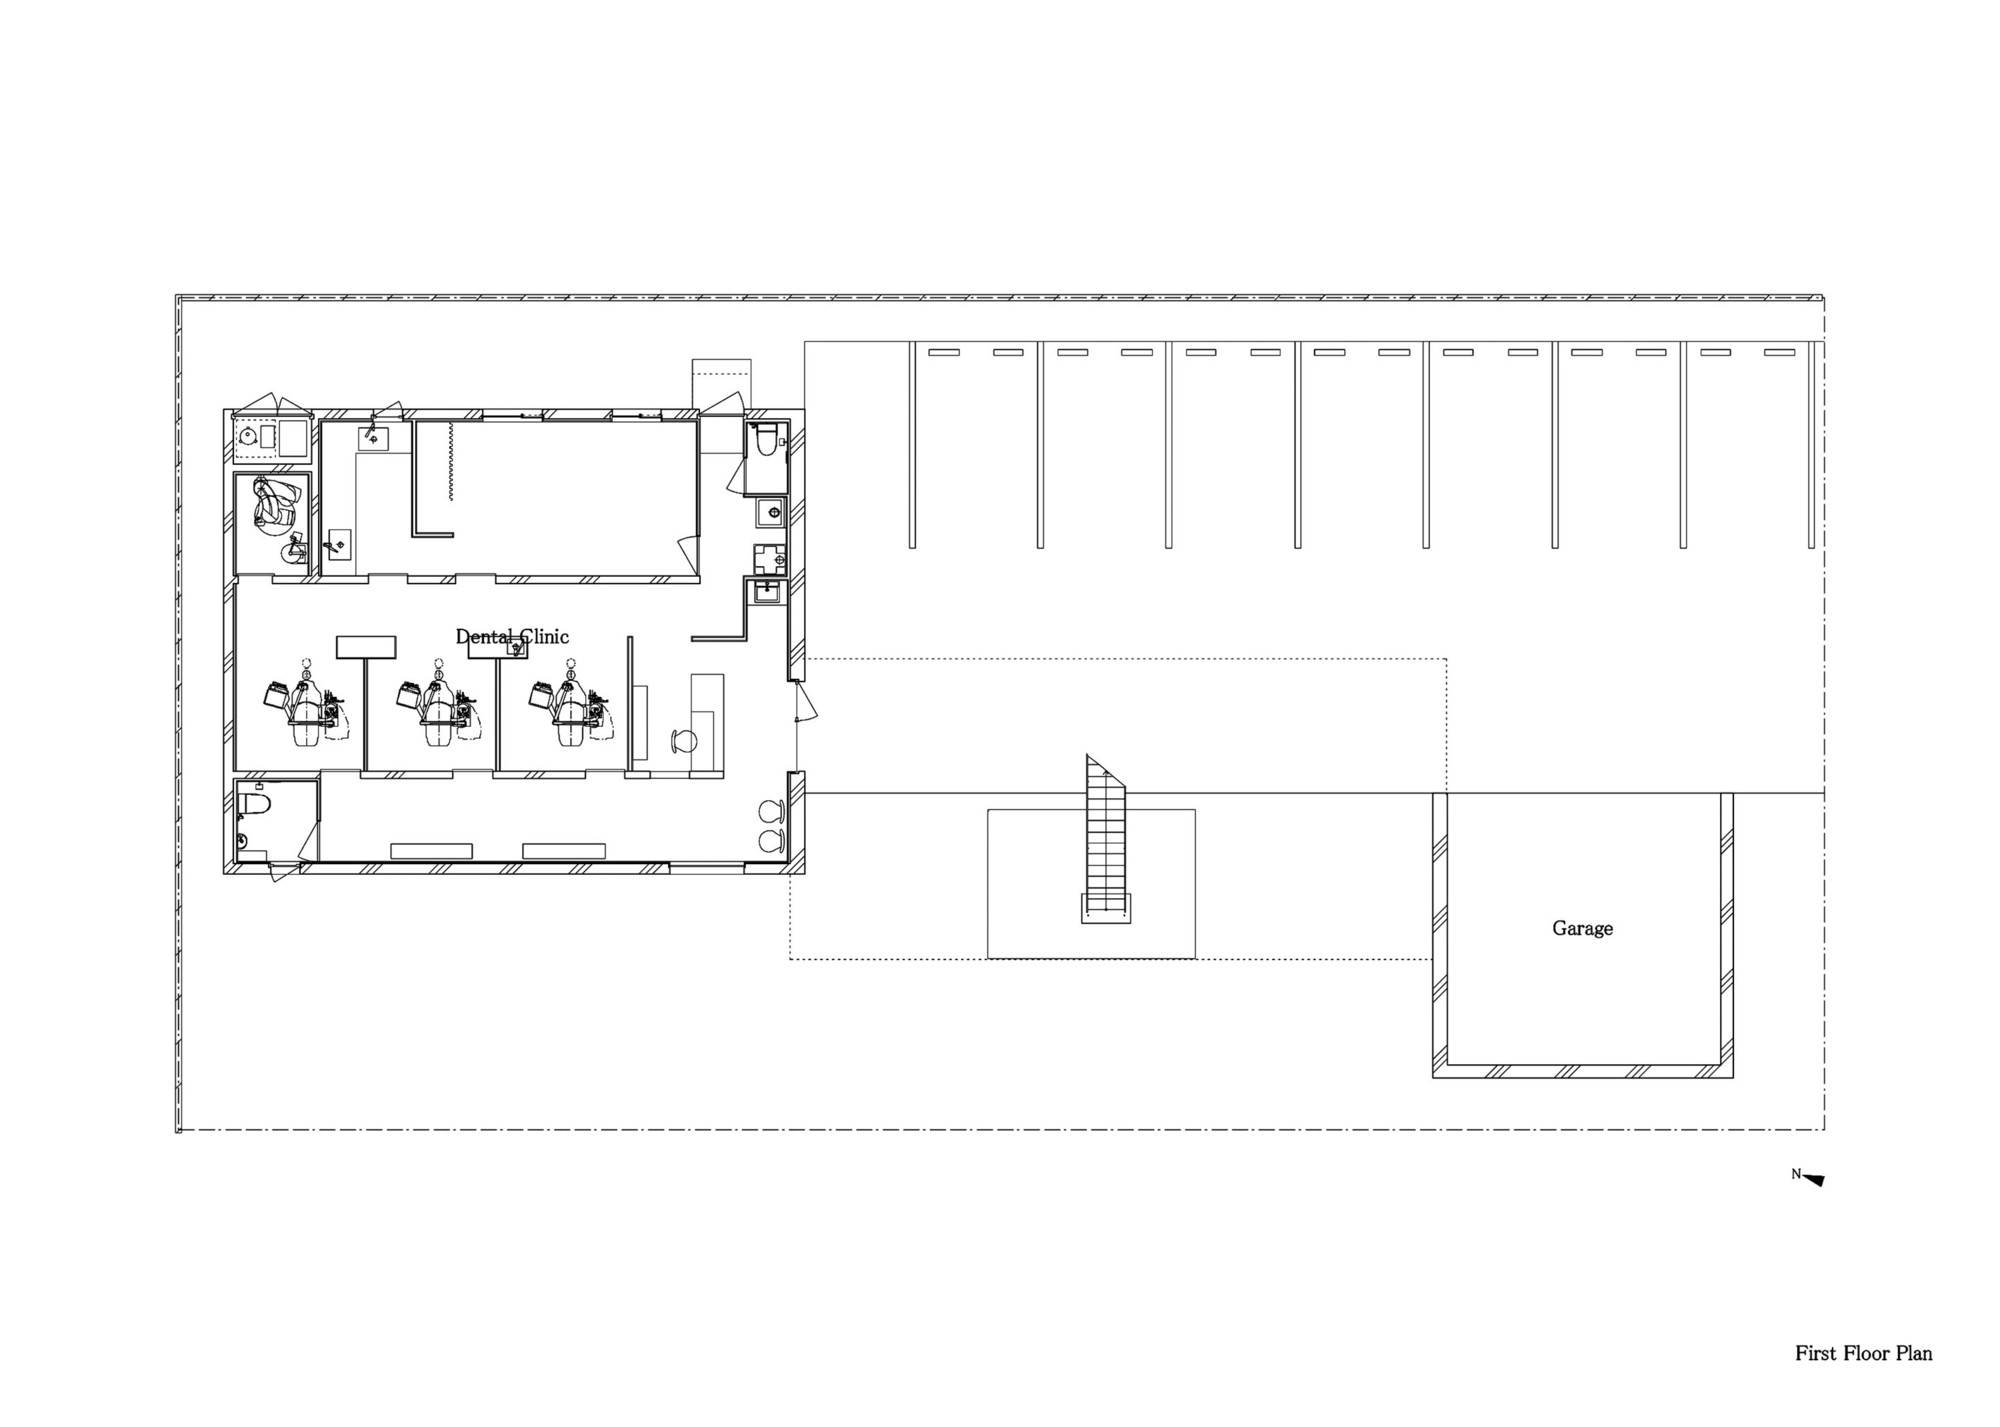 nagasawa dental clinic first floor plan [ 2000 x 1427 Pixel ]